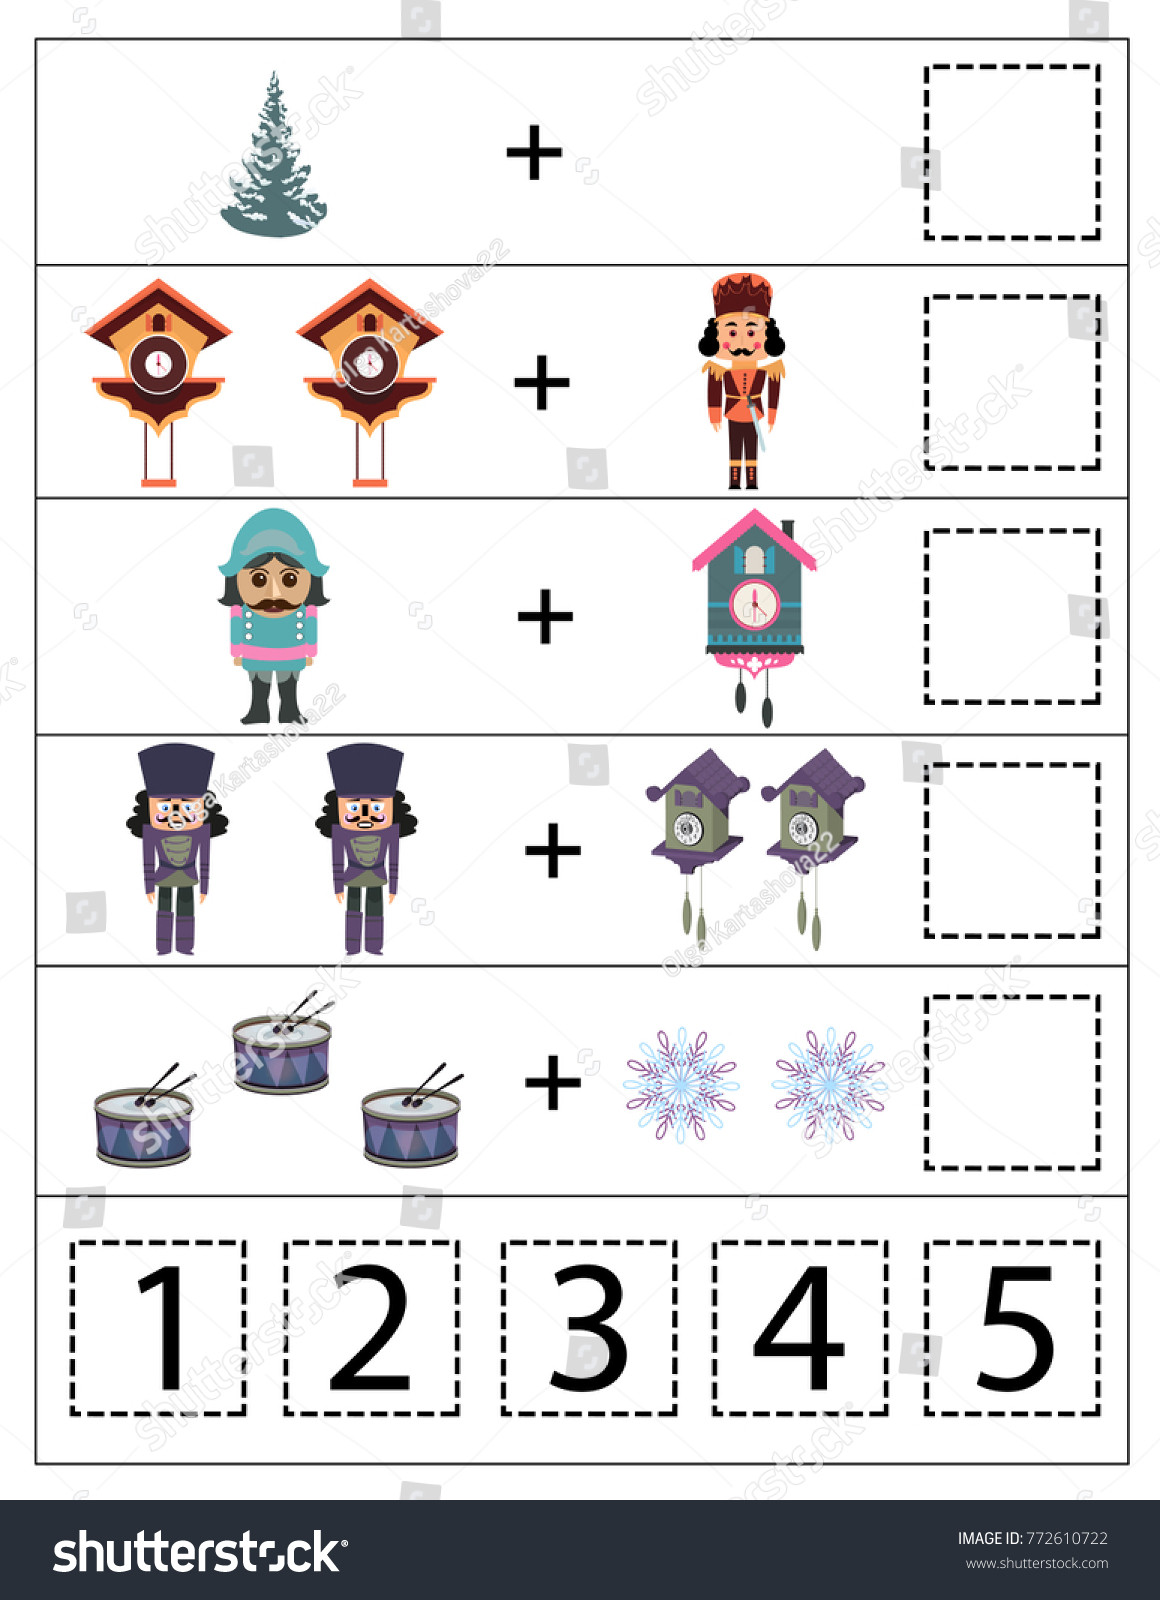 Menu Math Worksheets Printable Math Kindergarten Worksheet Kids Printable Game เวกเตอร์สต็